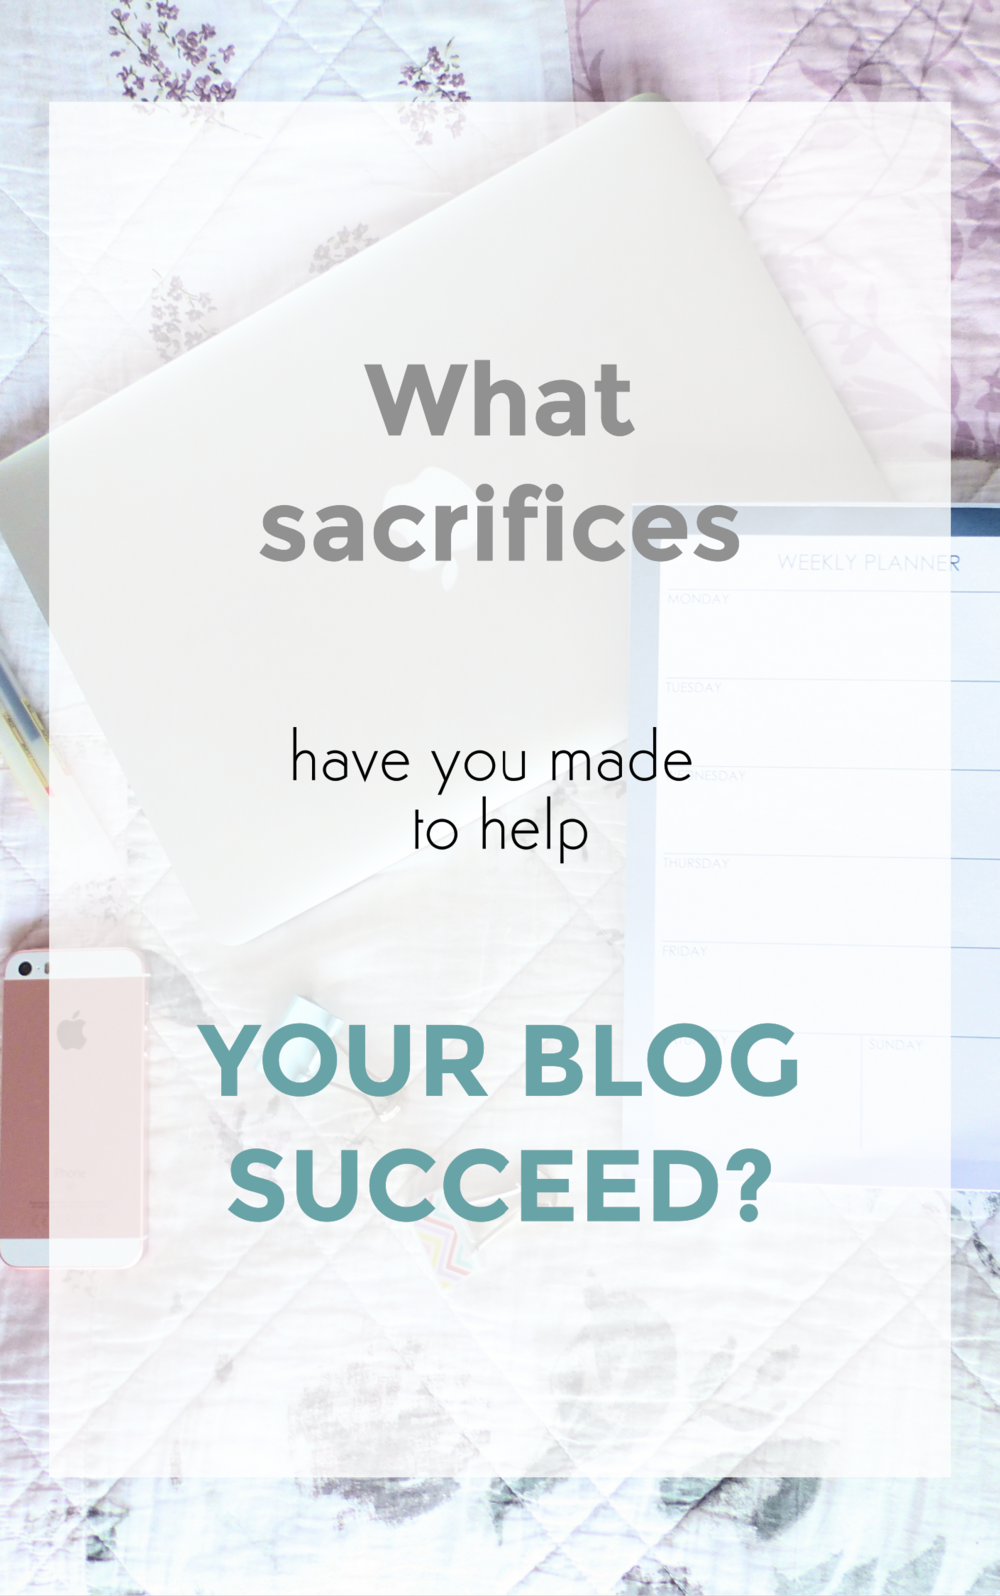 sacrifices to help blog succeed